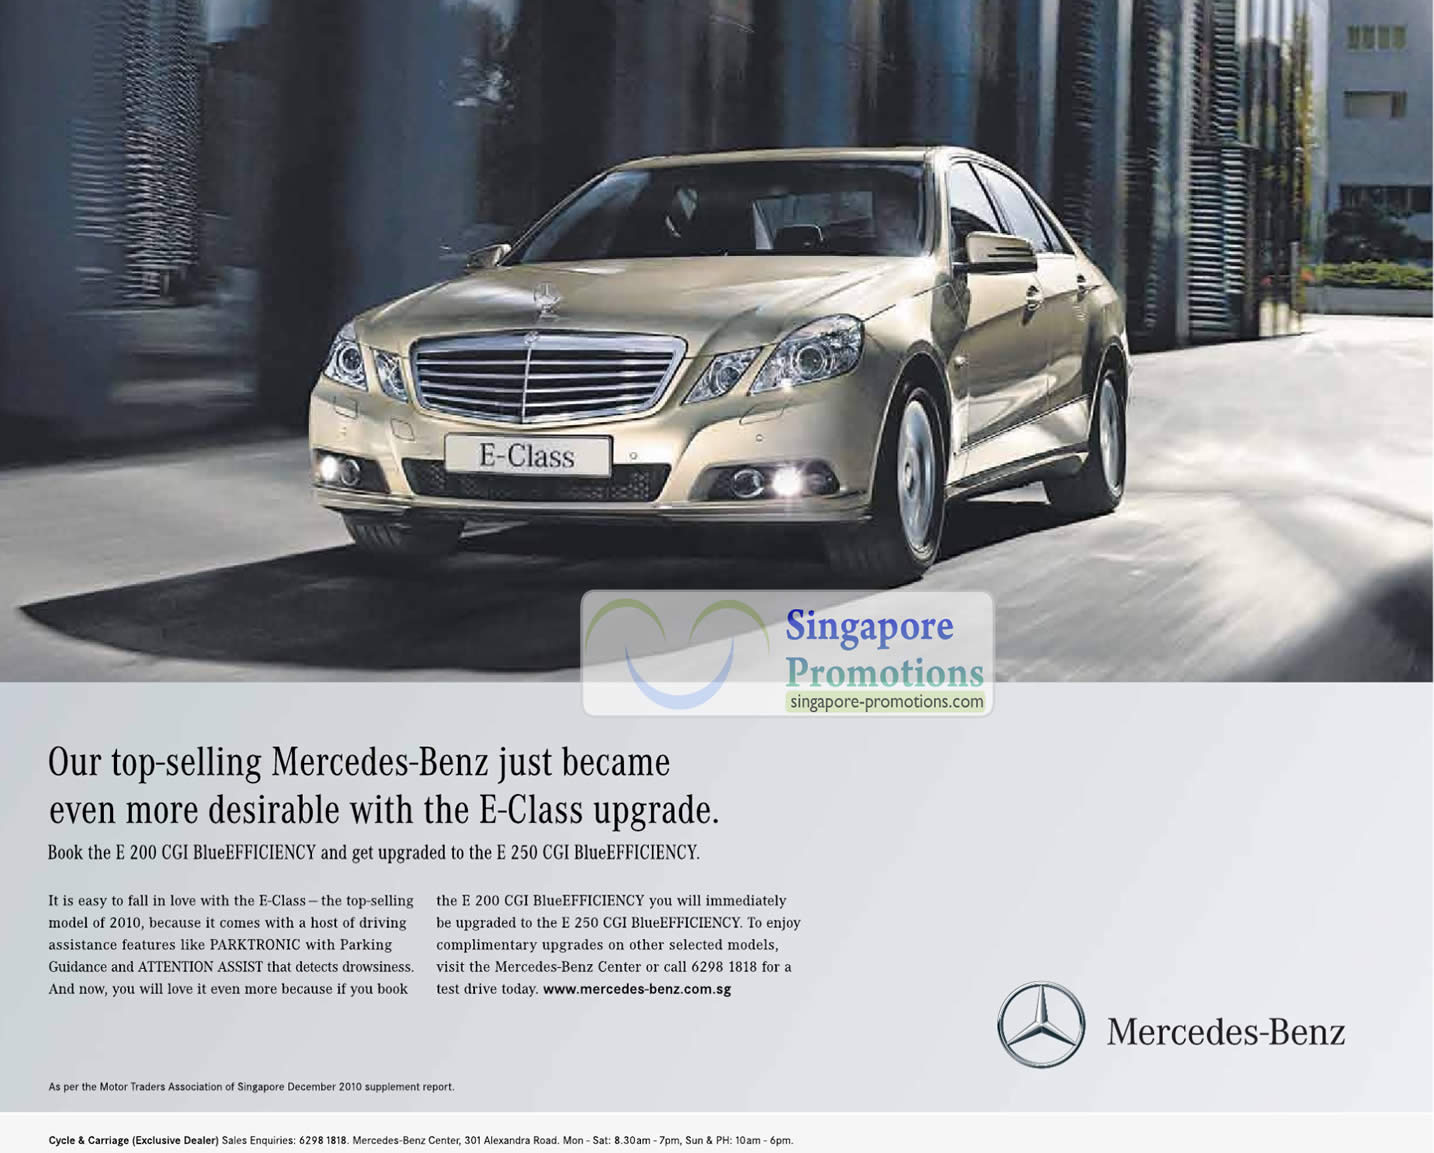 Mercedes benz 2 apr 2011 mercedes benz free upgrade from for Mercedes benz credit score requirements